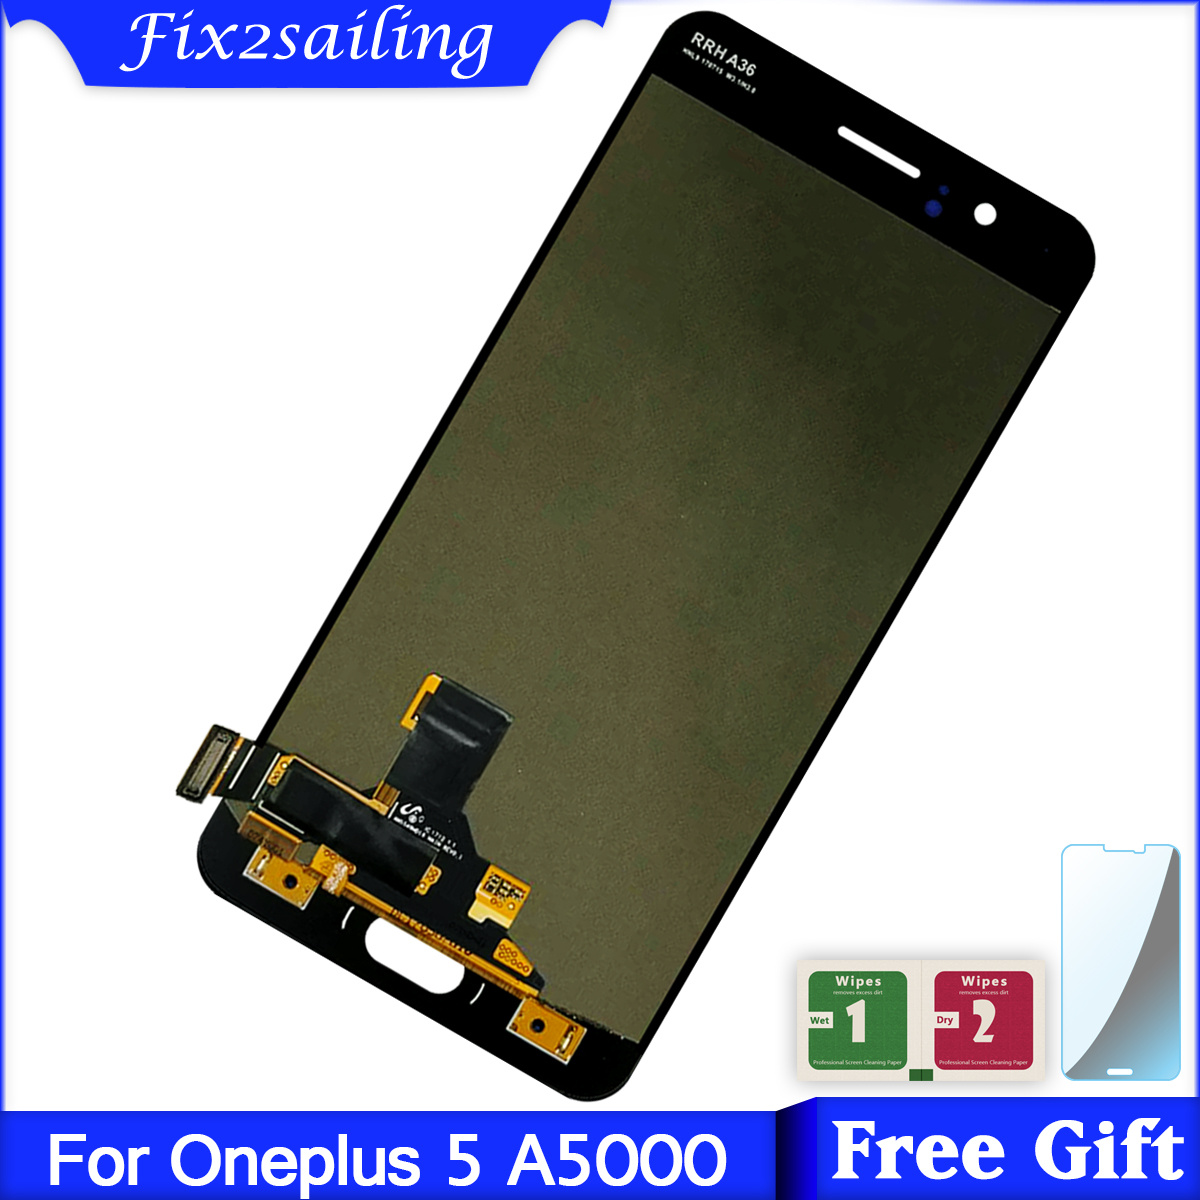 For One Plus 5 A5000 LCD display + Touch Screen Digitizer With Frame Super AMOLED Tested Working LCDFor One Plus 5 A5000 LCD display + Touch Screen Digitizer With Frame Super AMOLED Tested Working LCD